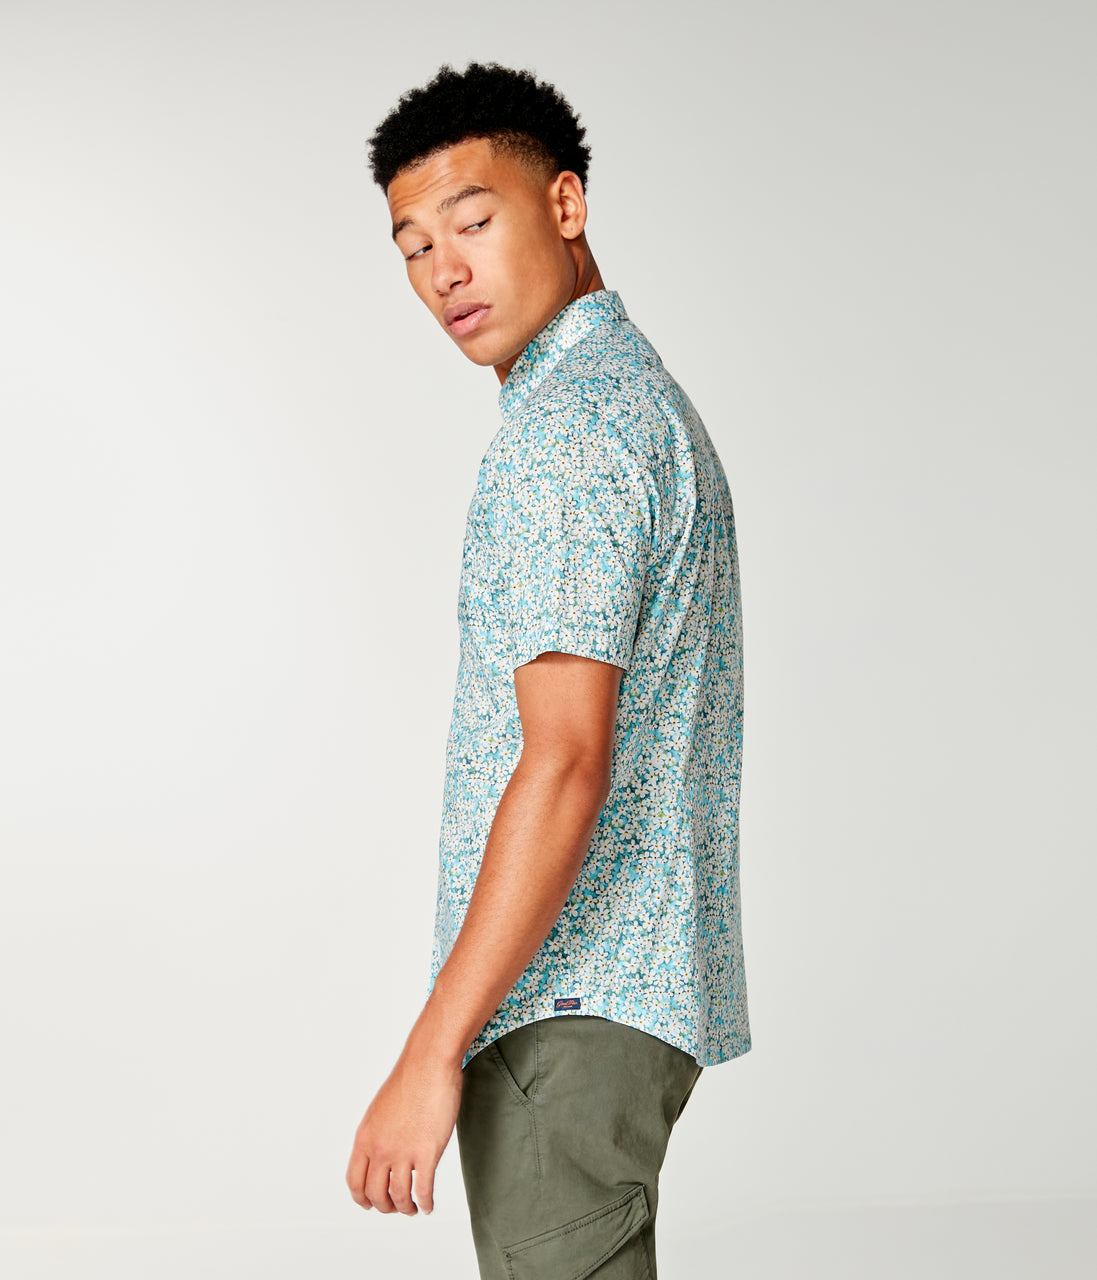 Woven On-Point Shirt - Blue Topaz Petal Liberty - Good Man Brand - On-Point Print Shirt Short Sleeve - Blue Topaz Liberty Pond